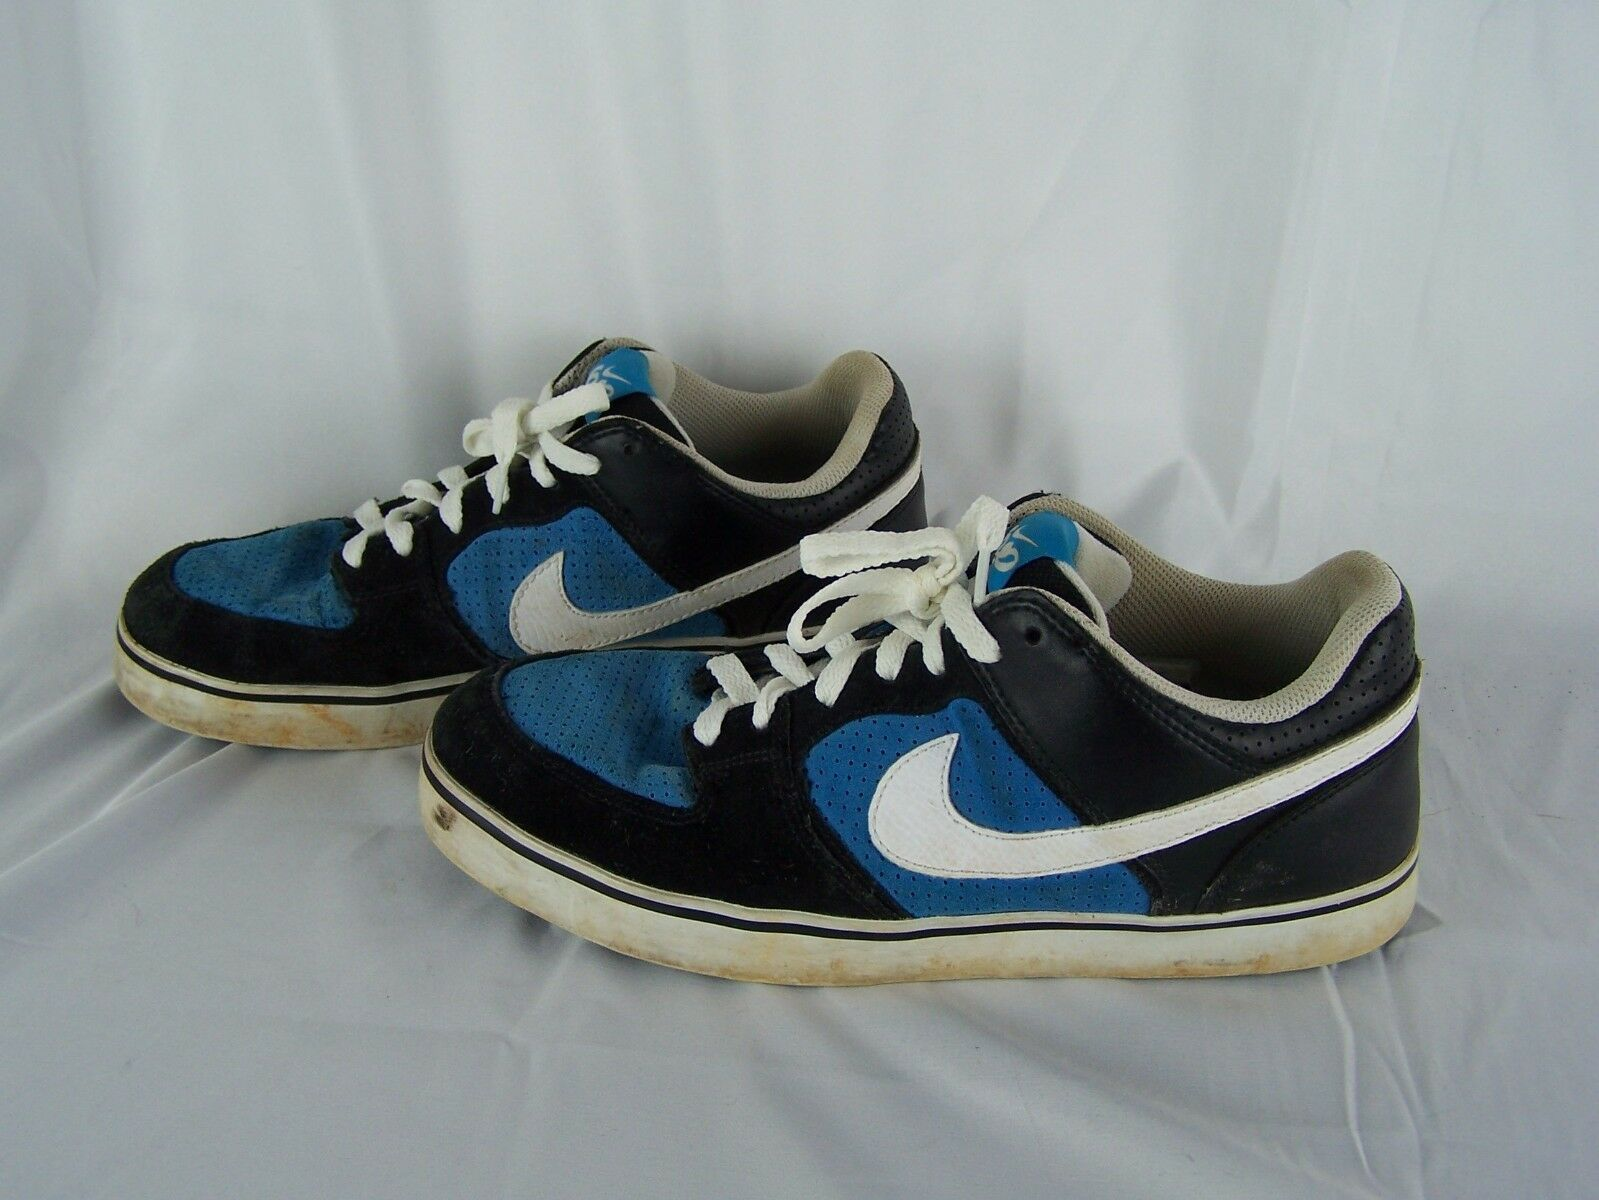 Special limited time Nike 6.0 Skateboarding Sneaker Shoes Comfortable